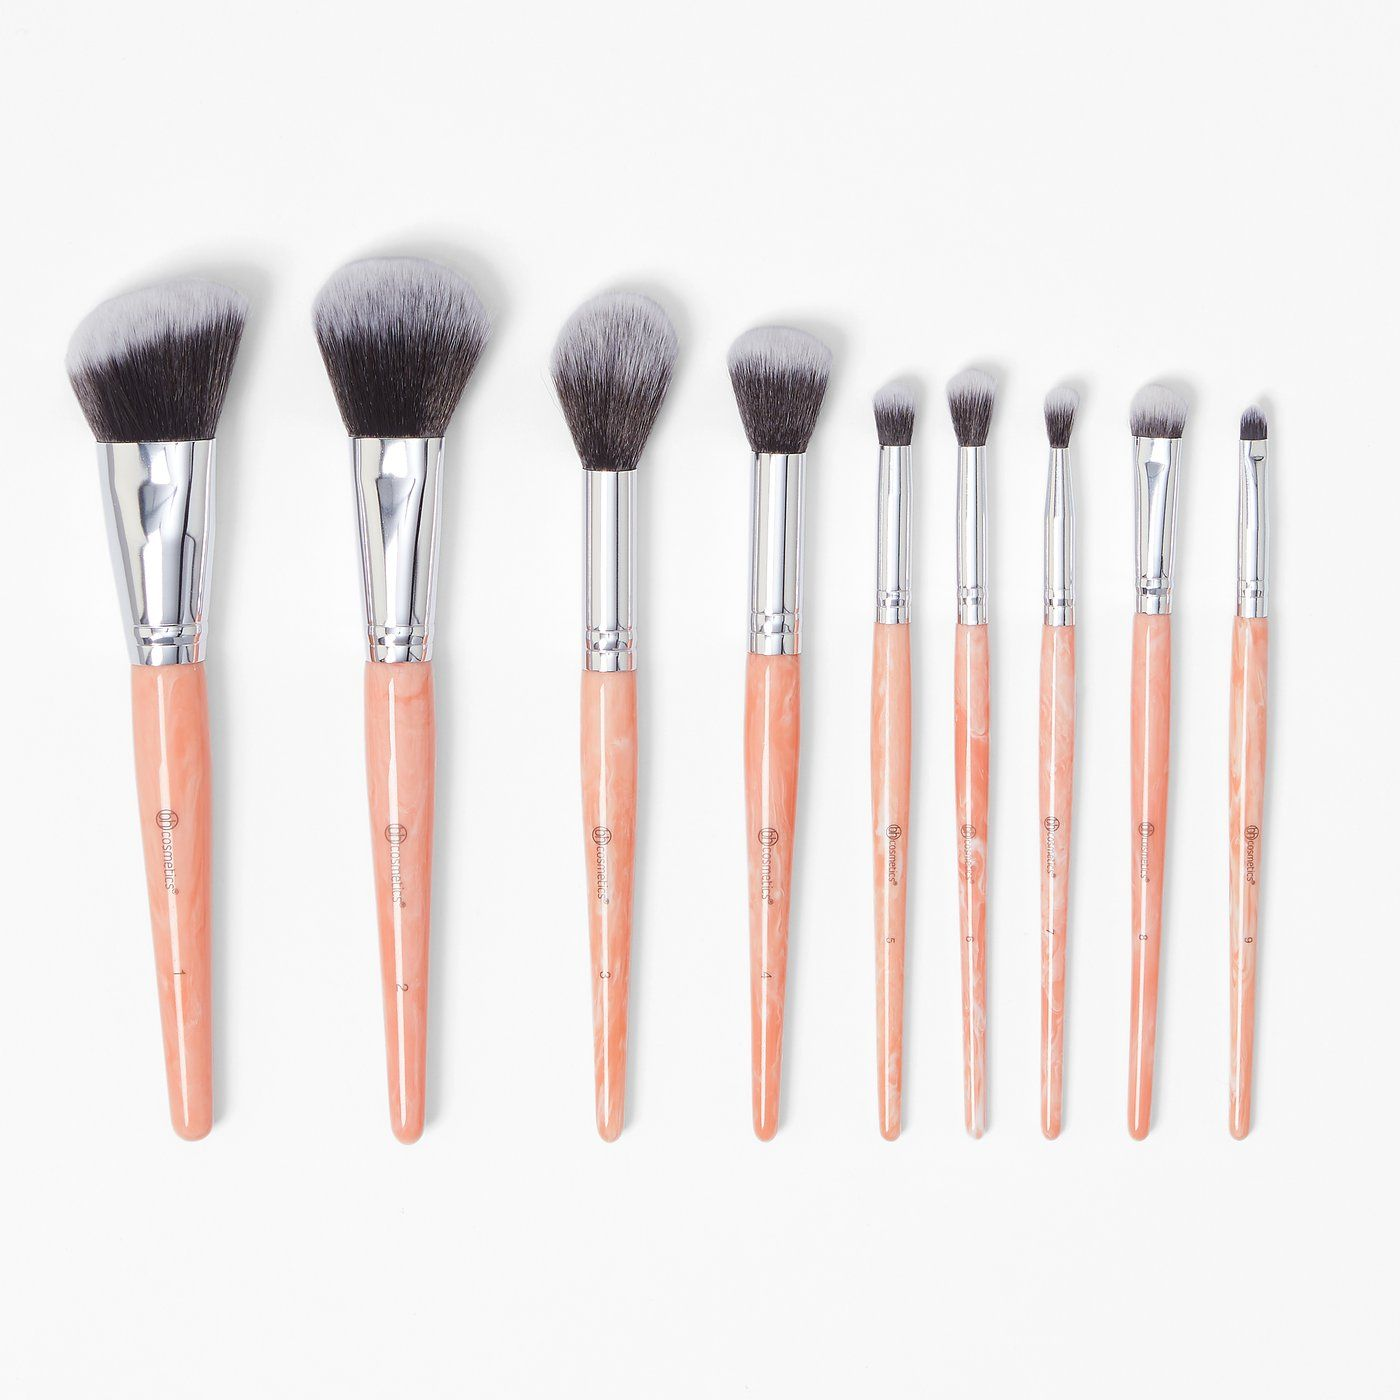 Rose Quartz Makeup brush set, It cosmetics brushes